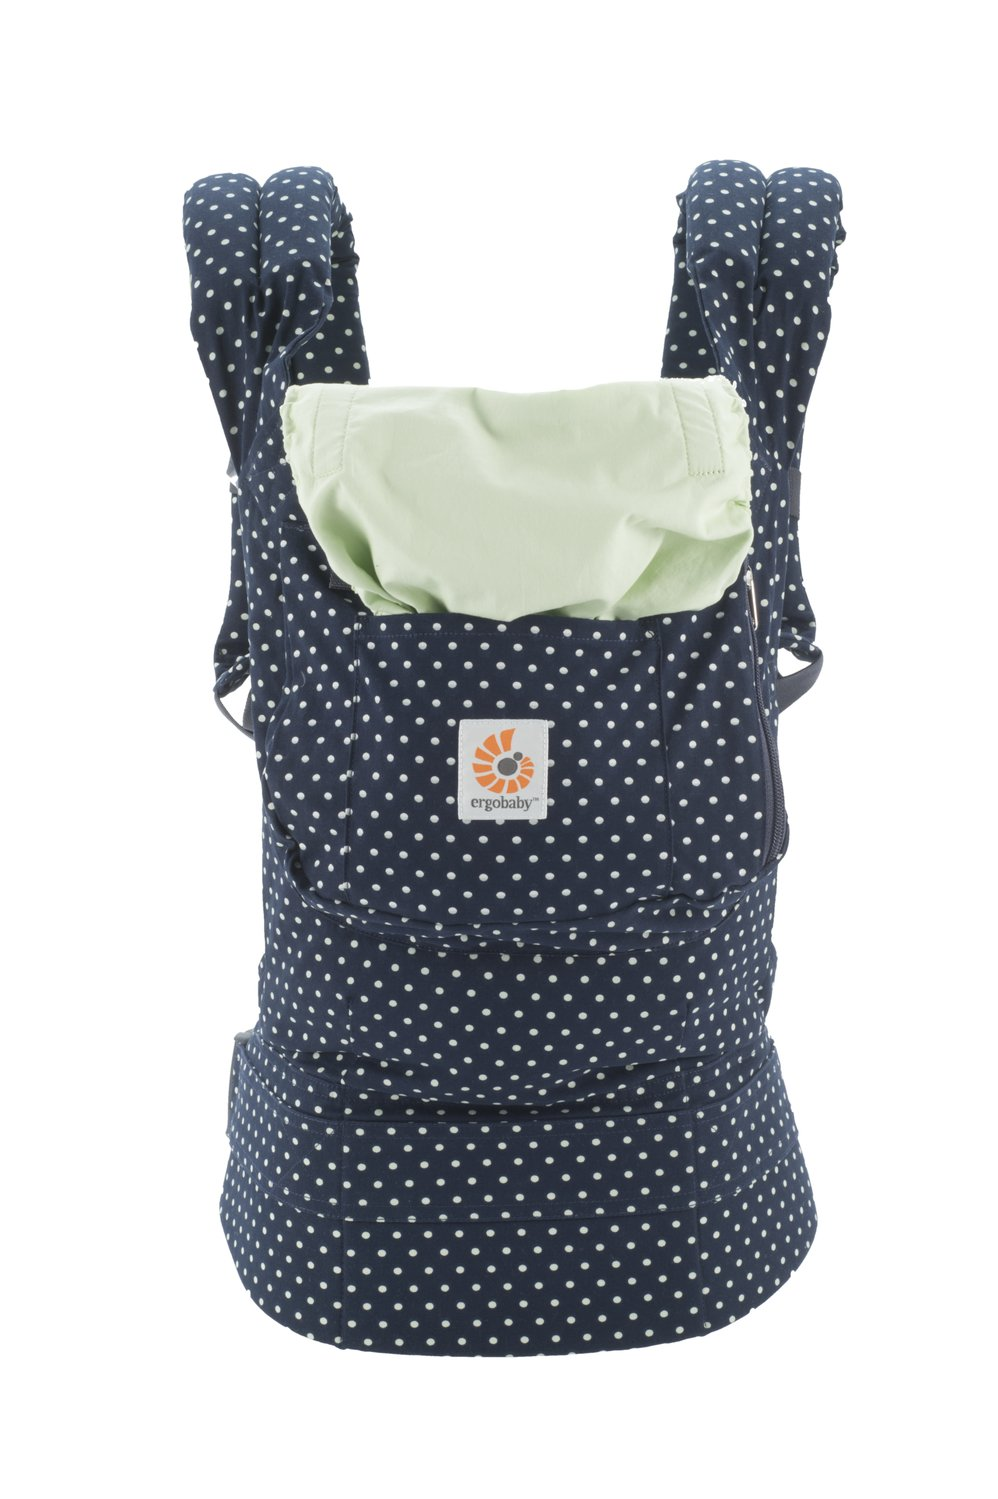 Ergobaby Original Collection Evolutionary Backpack Baby Carrier one size Ergobaby The baby's weight is evenly distributed between the wearer's hips and shoulders. The baby is ergonomically cradled in a natural seated position. It has front, back, and hip carrying positions. 1